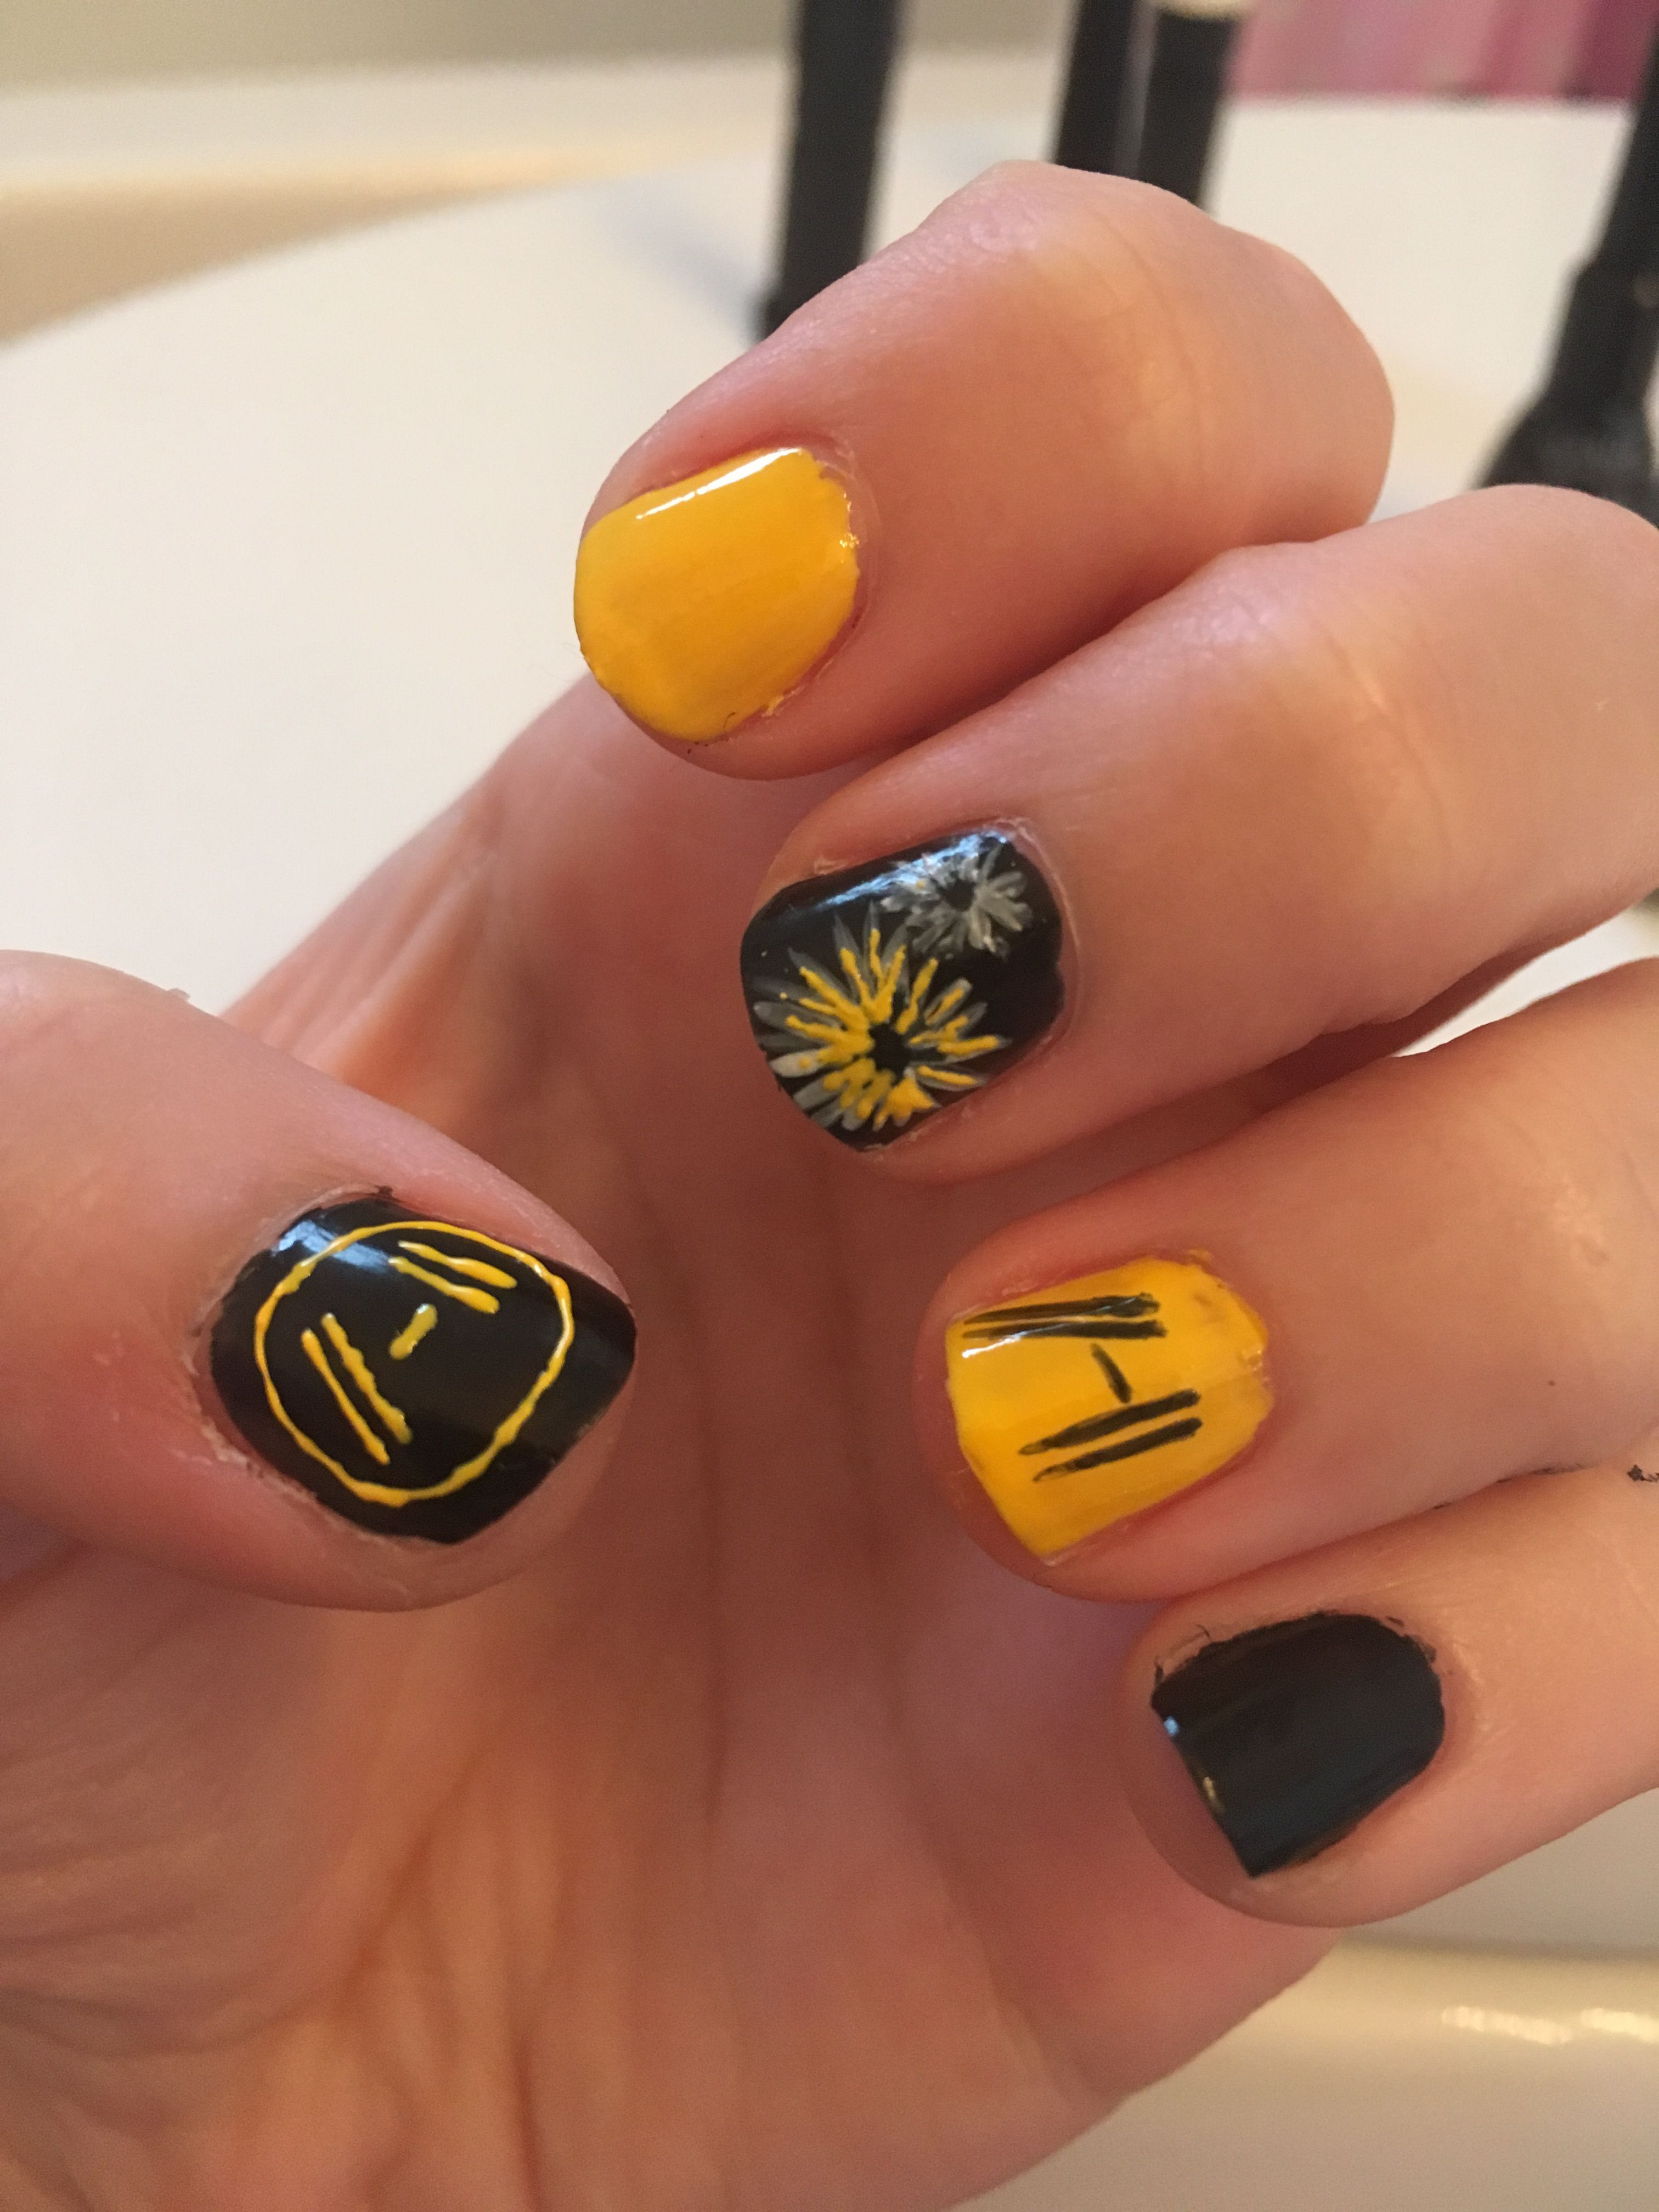 Pin By Katie Walker On Acrylic Nails Band Nails Twenty One Pilots Art Manicure